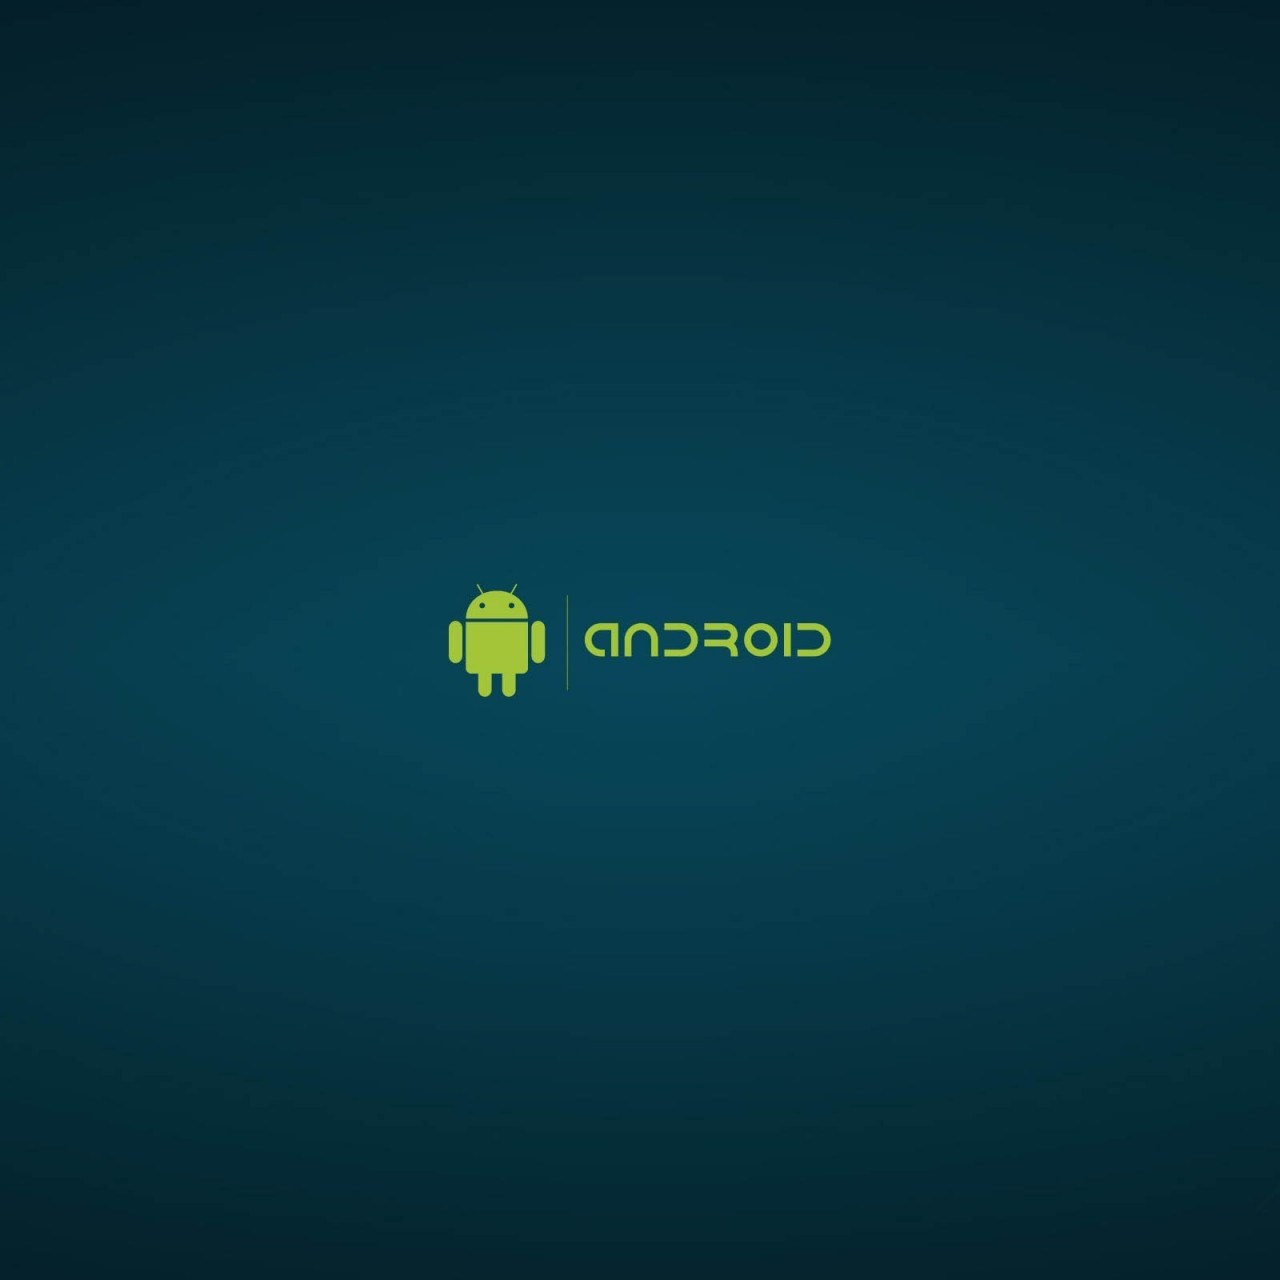 Android hd wallpapers for pc wallpapersafari - Wallpapers android hd ...